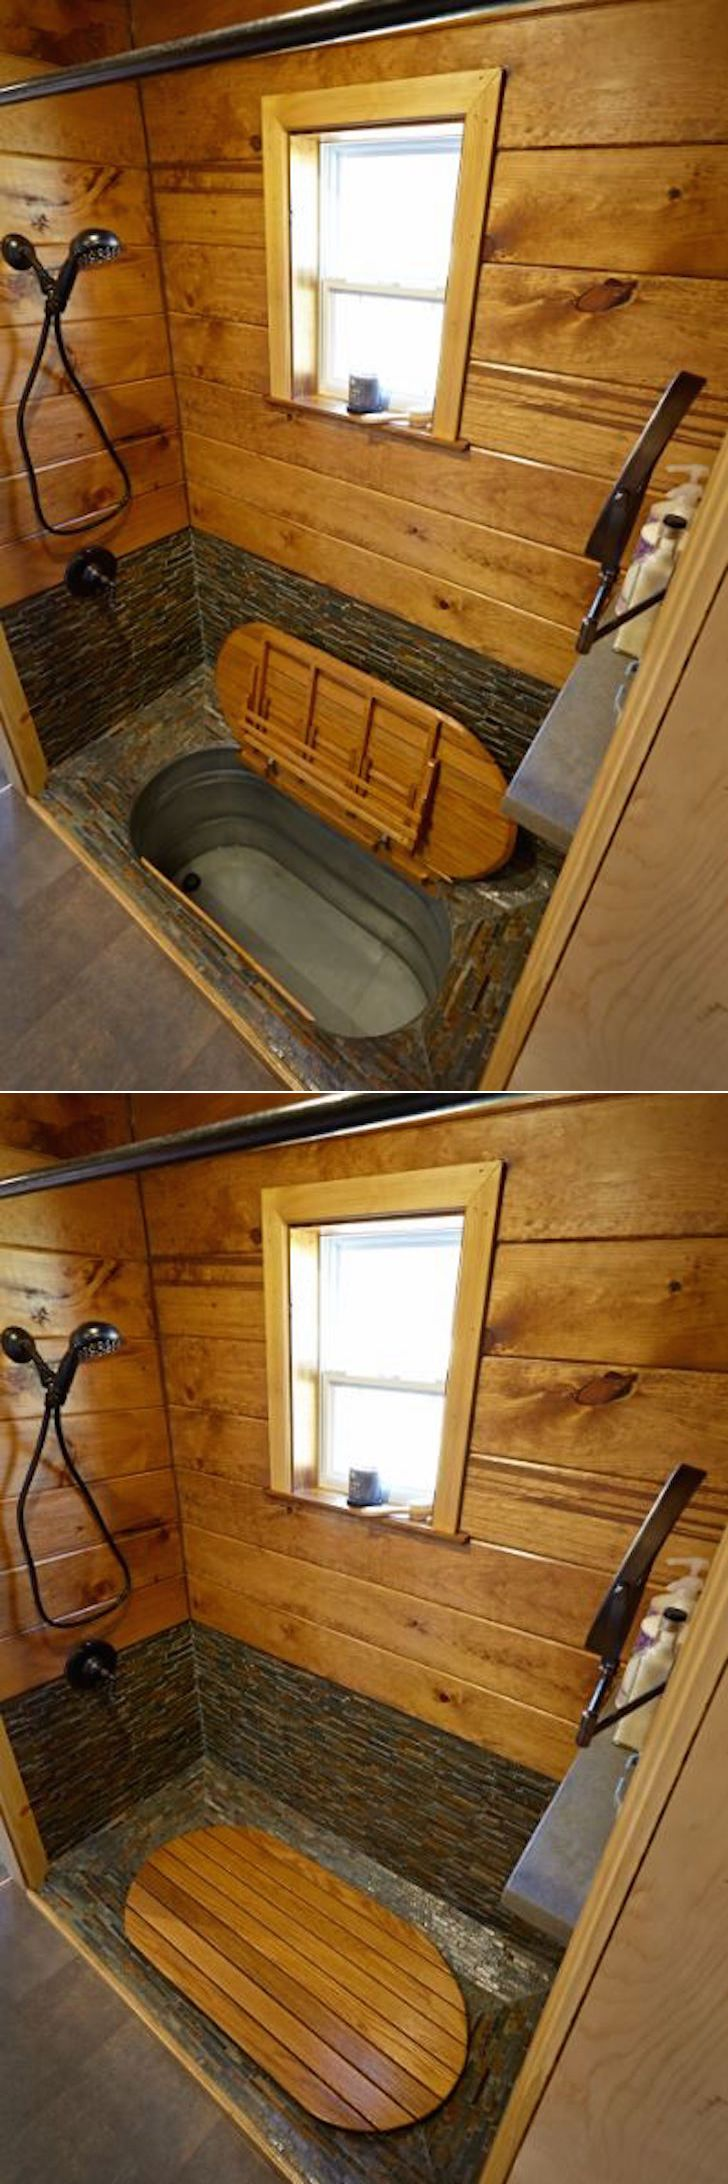 The shower features a hidden bathtub under the floor. Simply pull up this wooden cover … and start soaking your worries away.